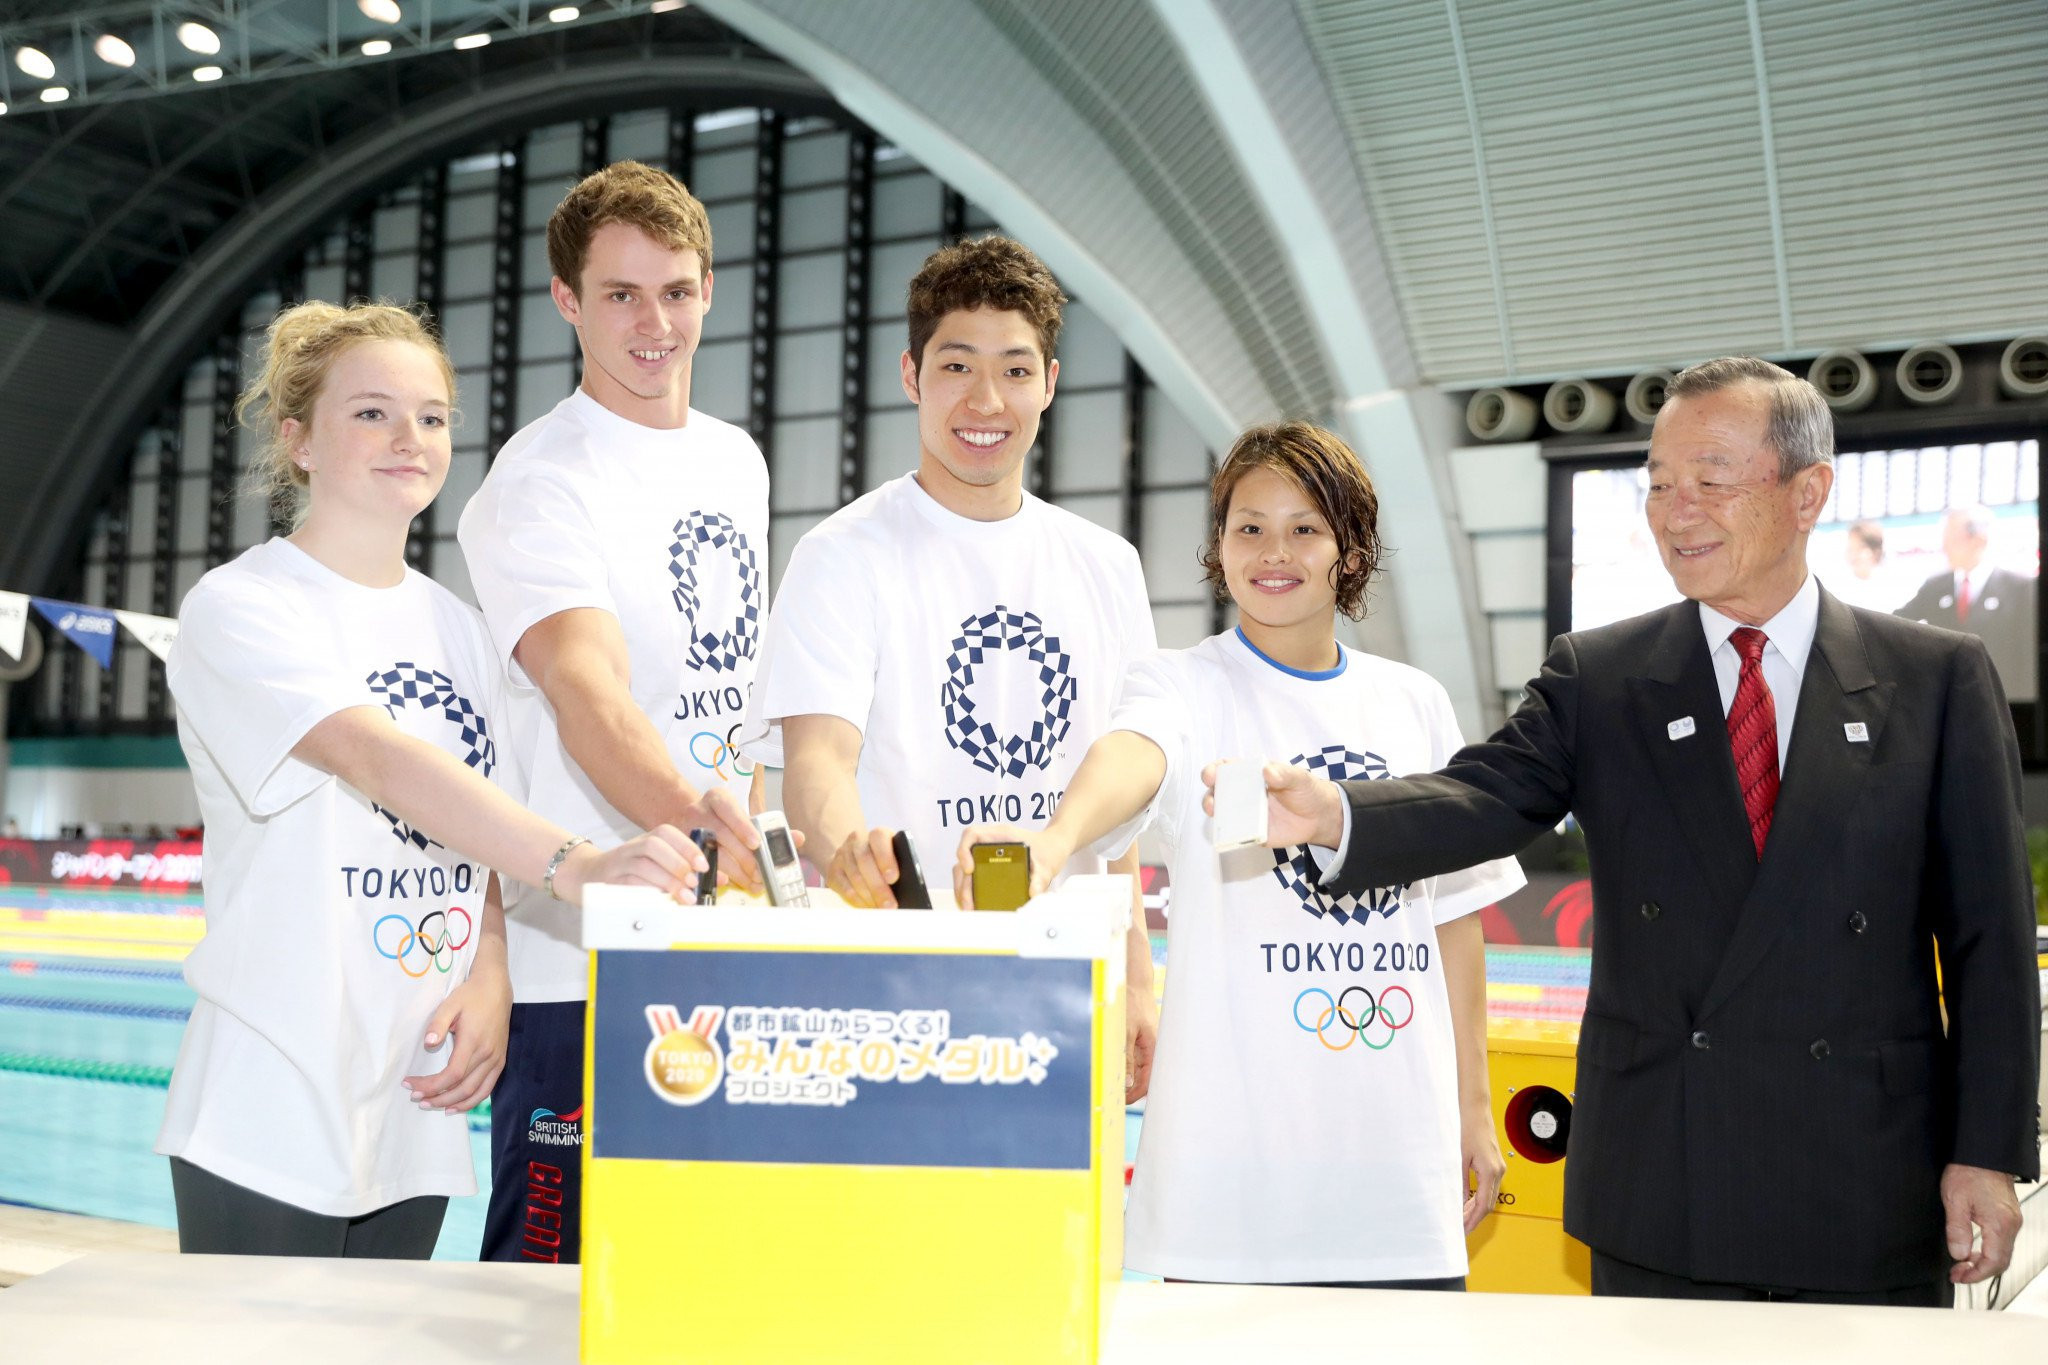 All the medals at the Tokyo 2020 Olympic and Paralympic Games will be made from recycled electronic waste ©Tokyo 2020